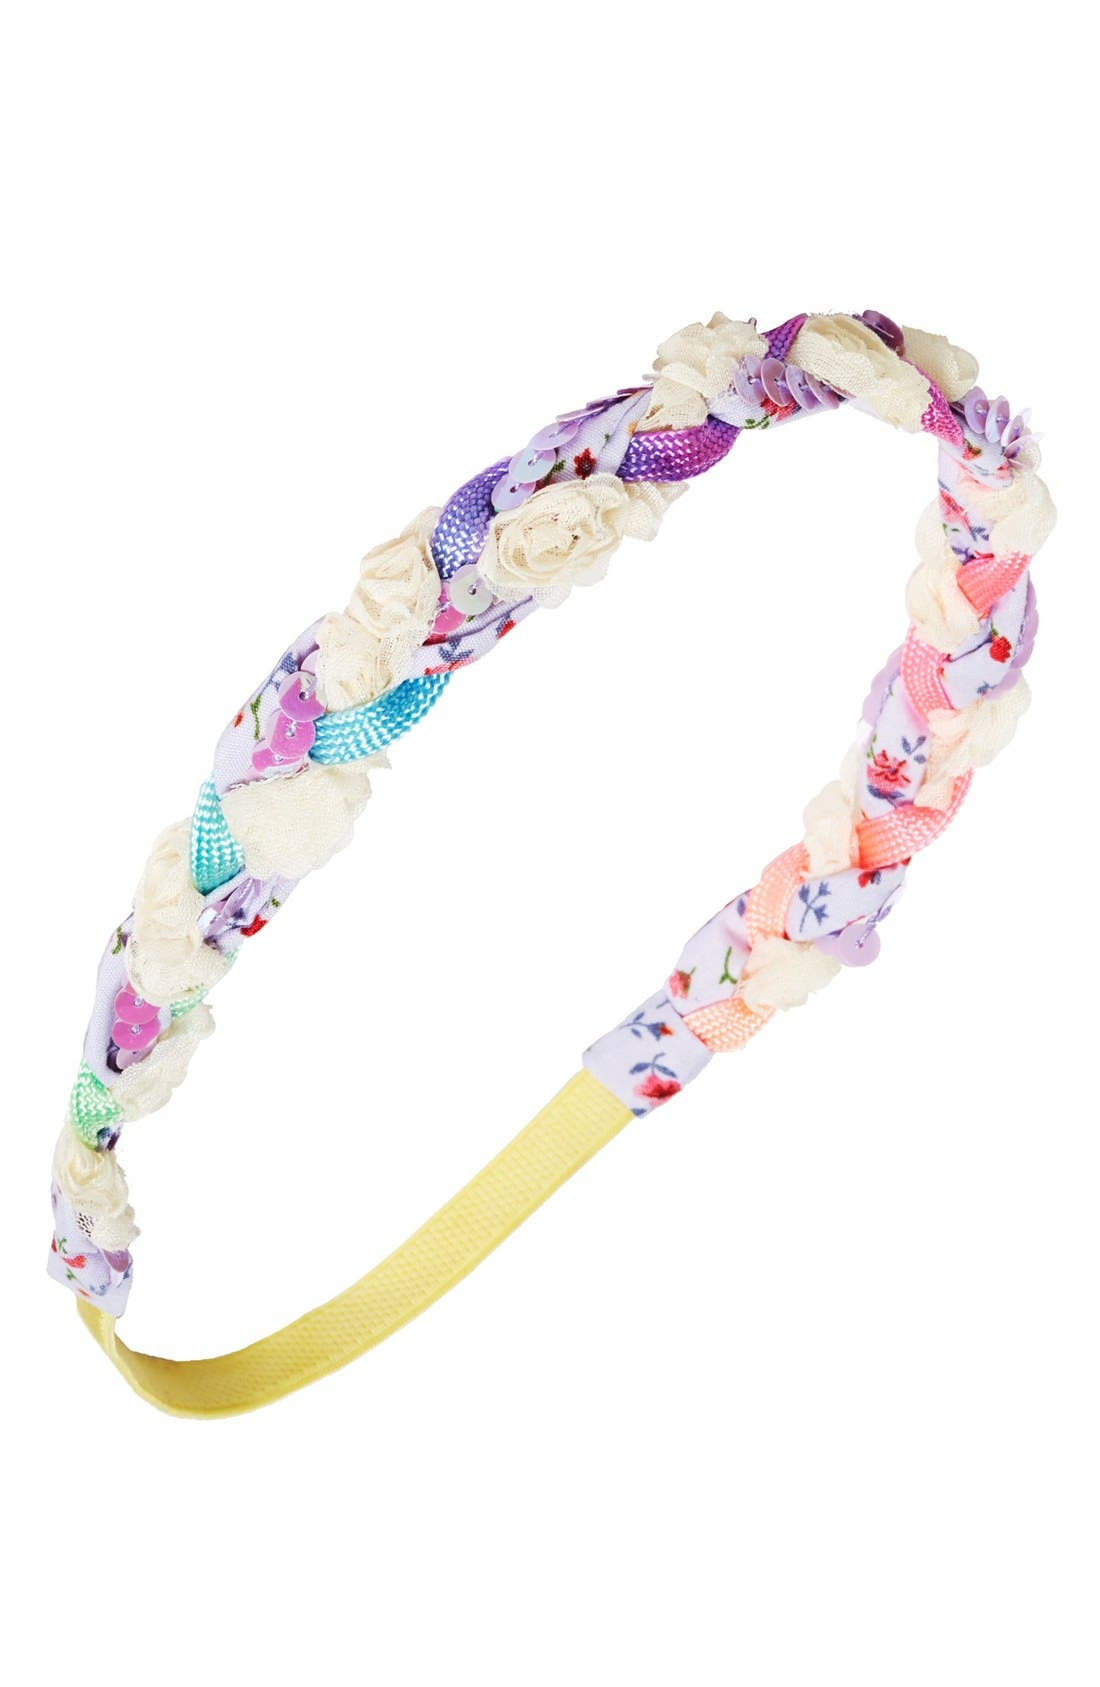 Alternate Image 1 Selected - The Accessory Collective Sequin Braid Head Wrap (Girls)